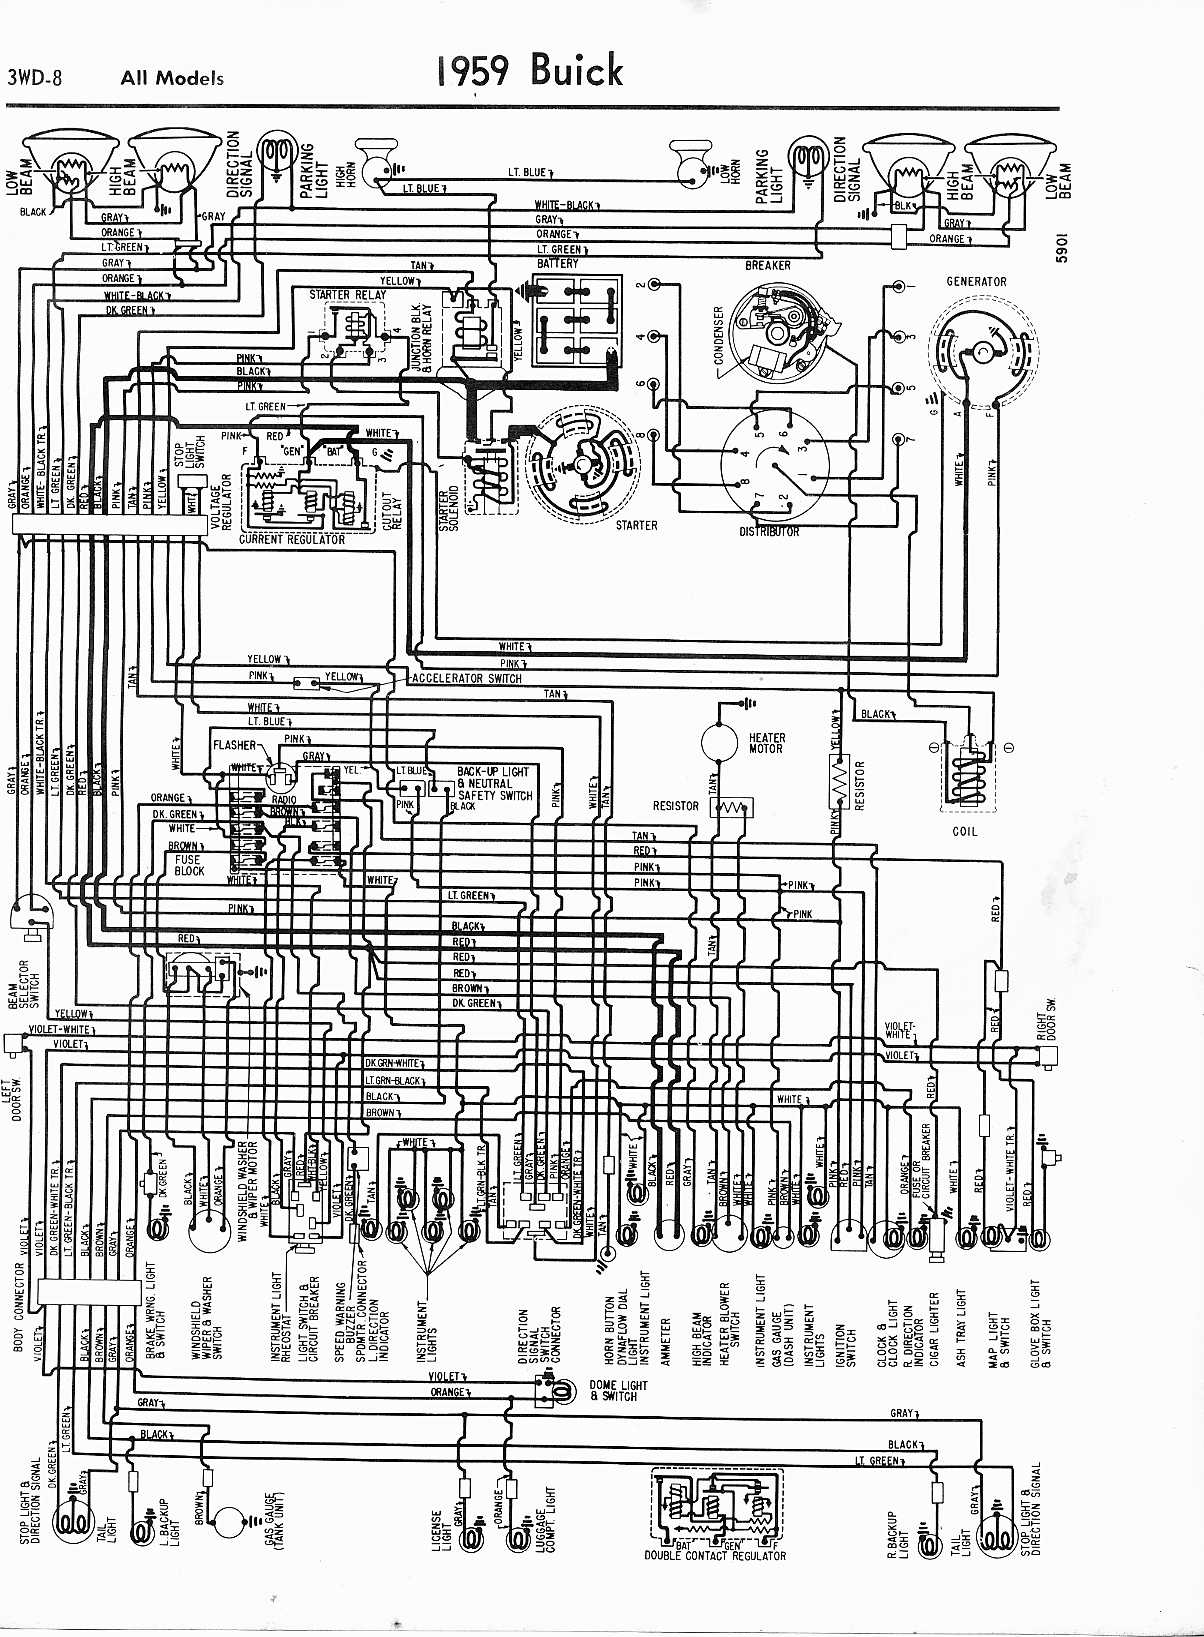 95 buick regal radio wiring diagram get free image about wiring diagram